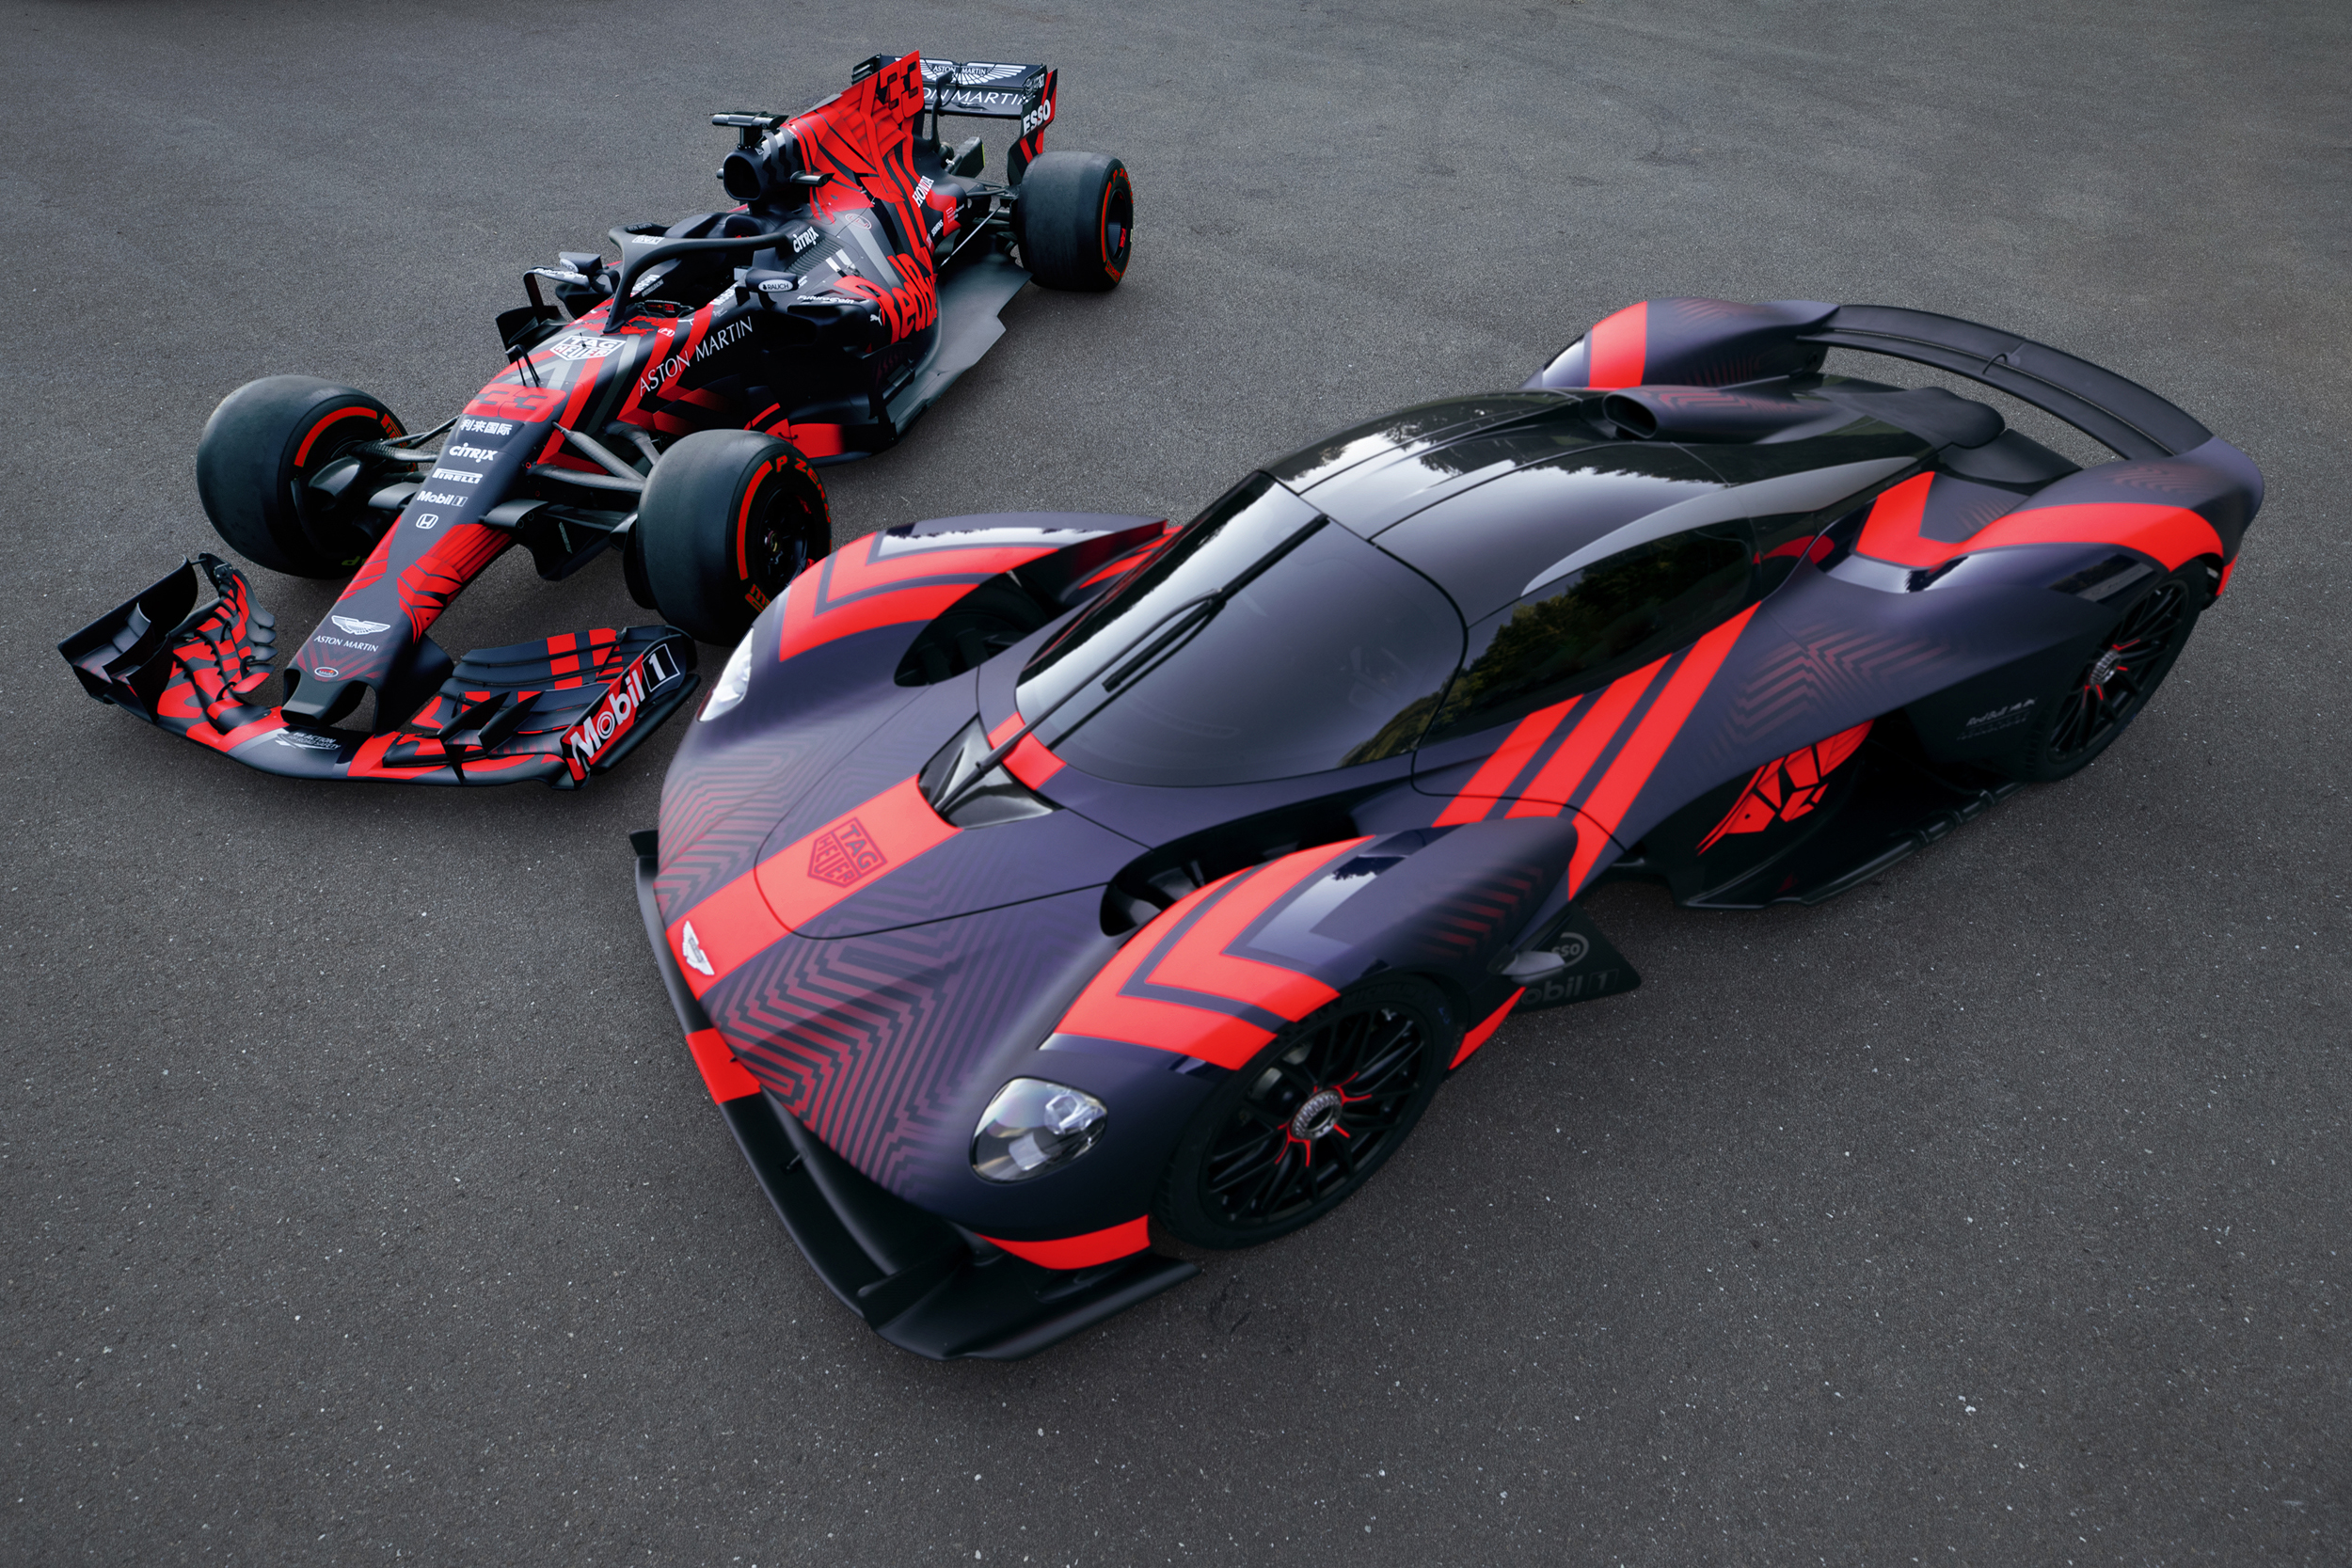 RB14 and Aston Martin Valkyrie [2]